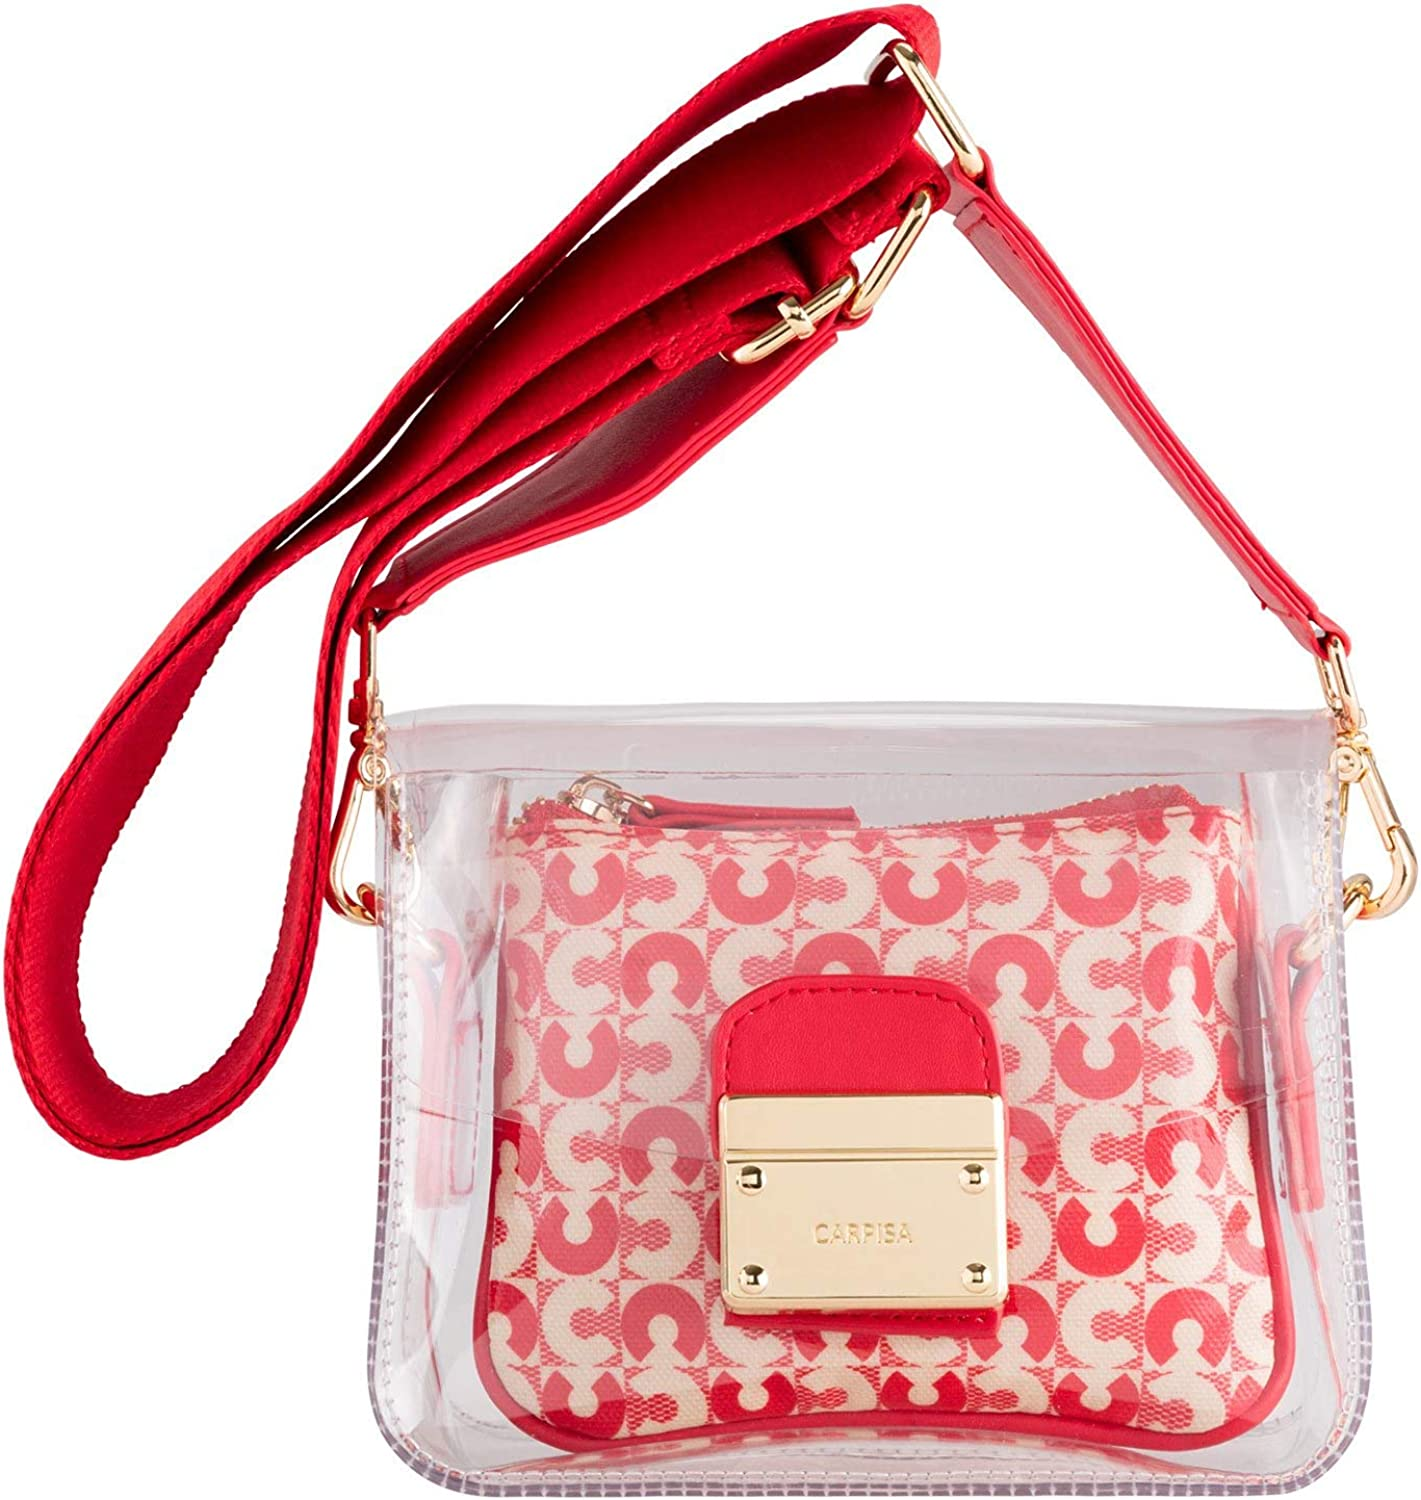 Quieta CARPISA /® Transparent shopper bag